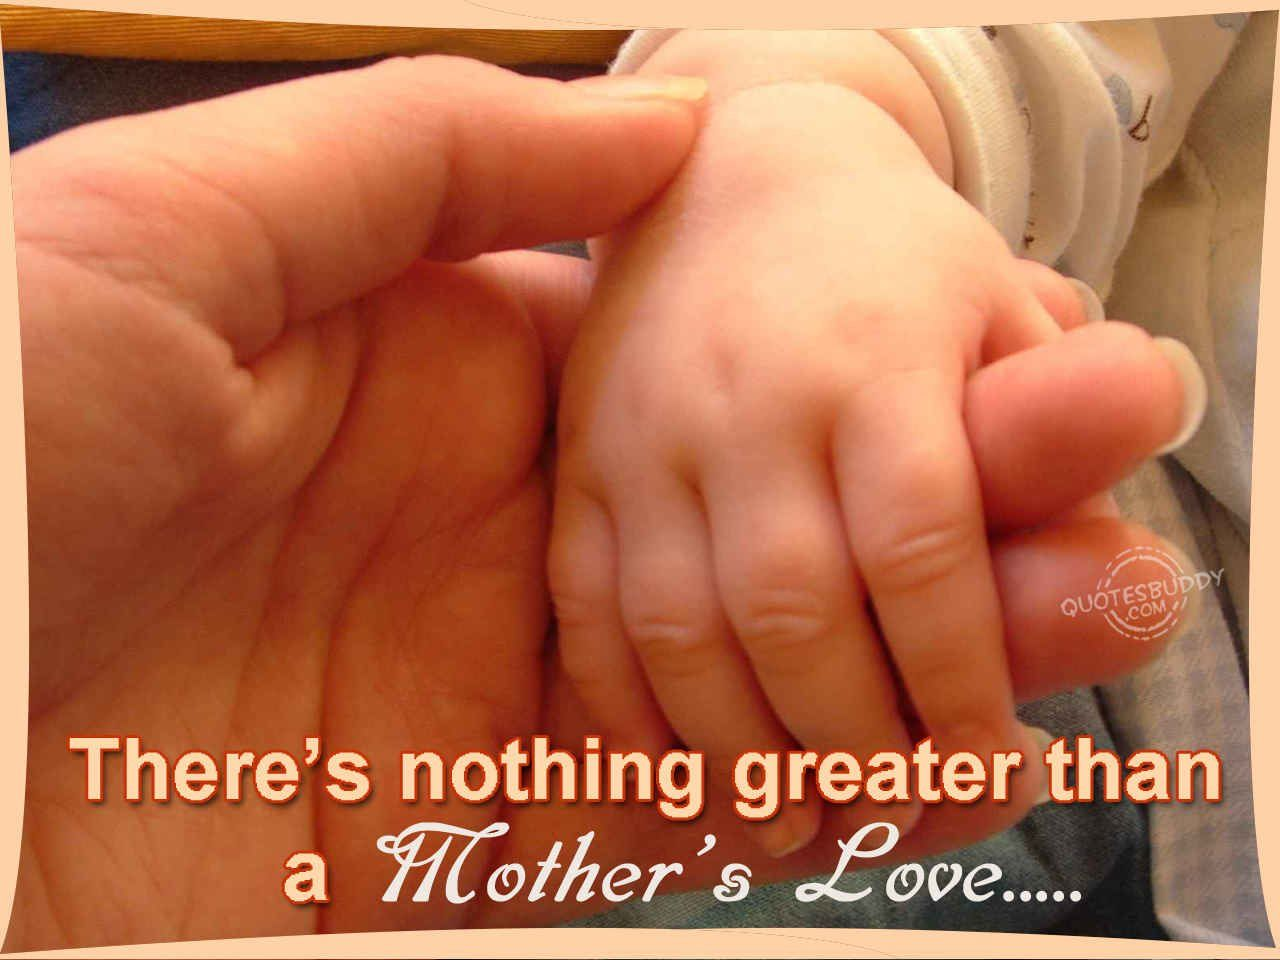 Mothers Love Quotes There's Nothing Greater Than A Mother's Love Pictures Photos And